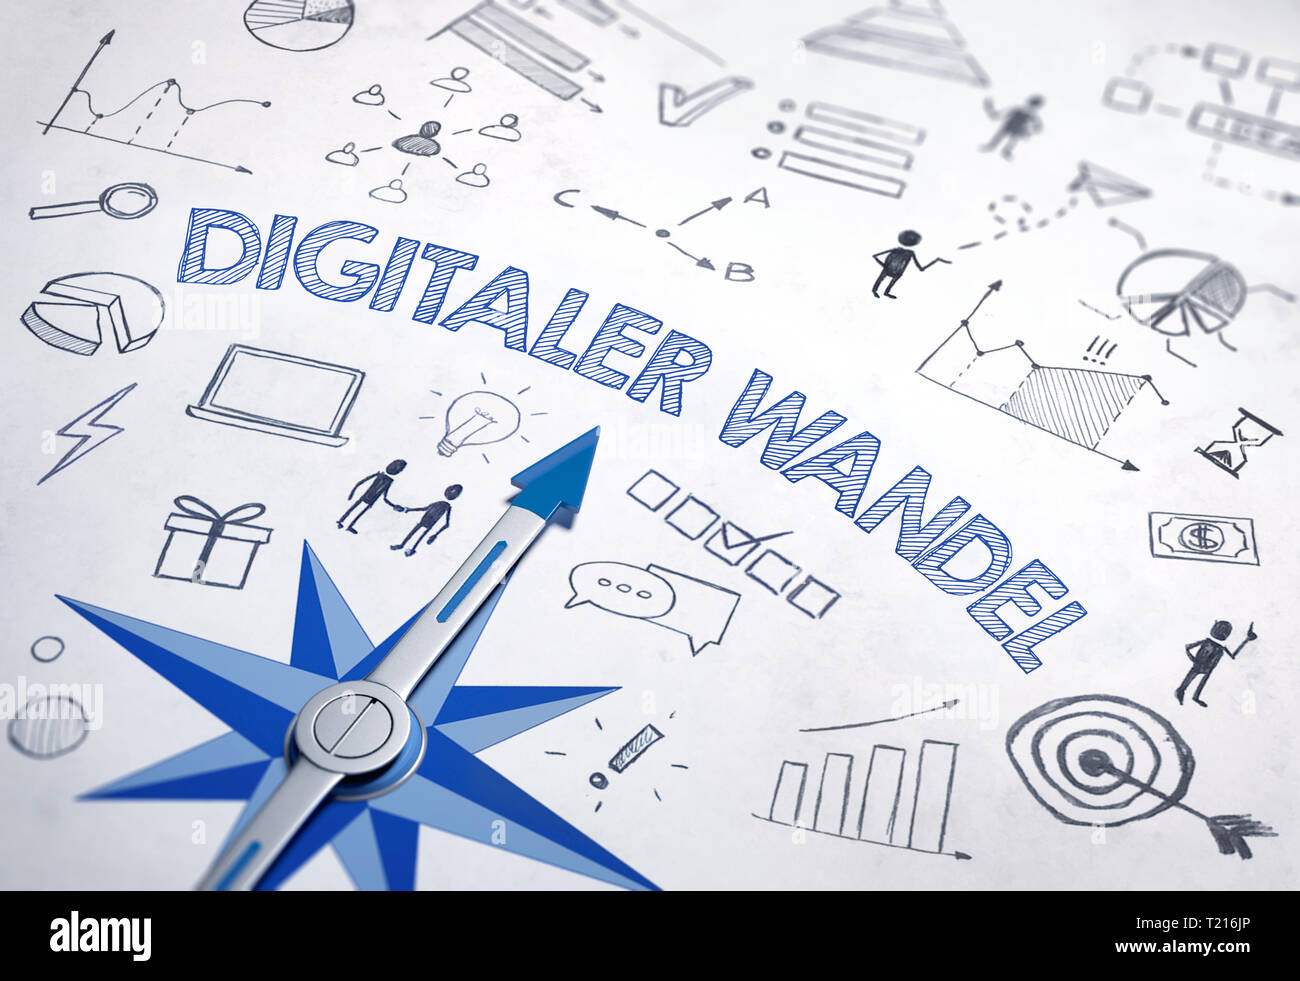 Digitaler wandel (German for 'Digital change') written in bold, blue font in an IT design with compass and various sketches. 3d Rendering - Stock Image